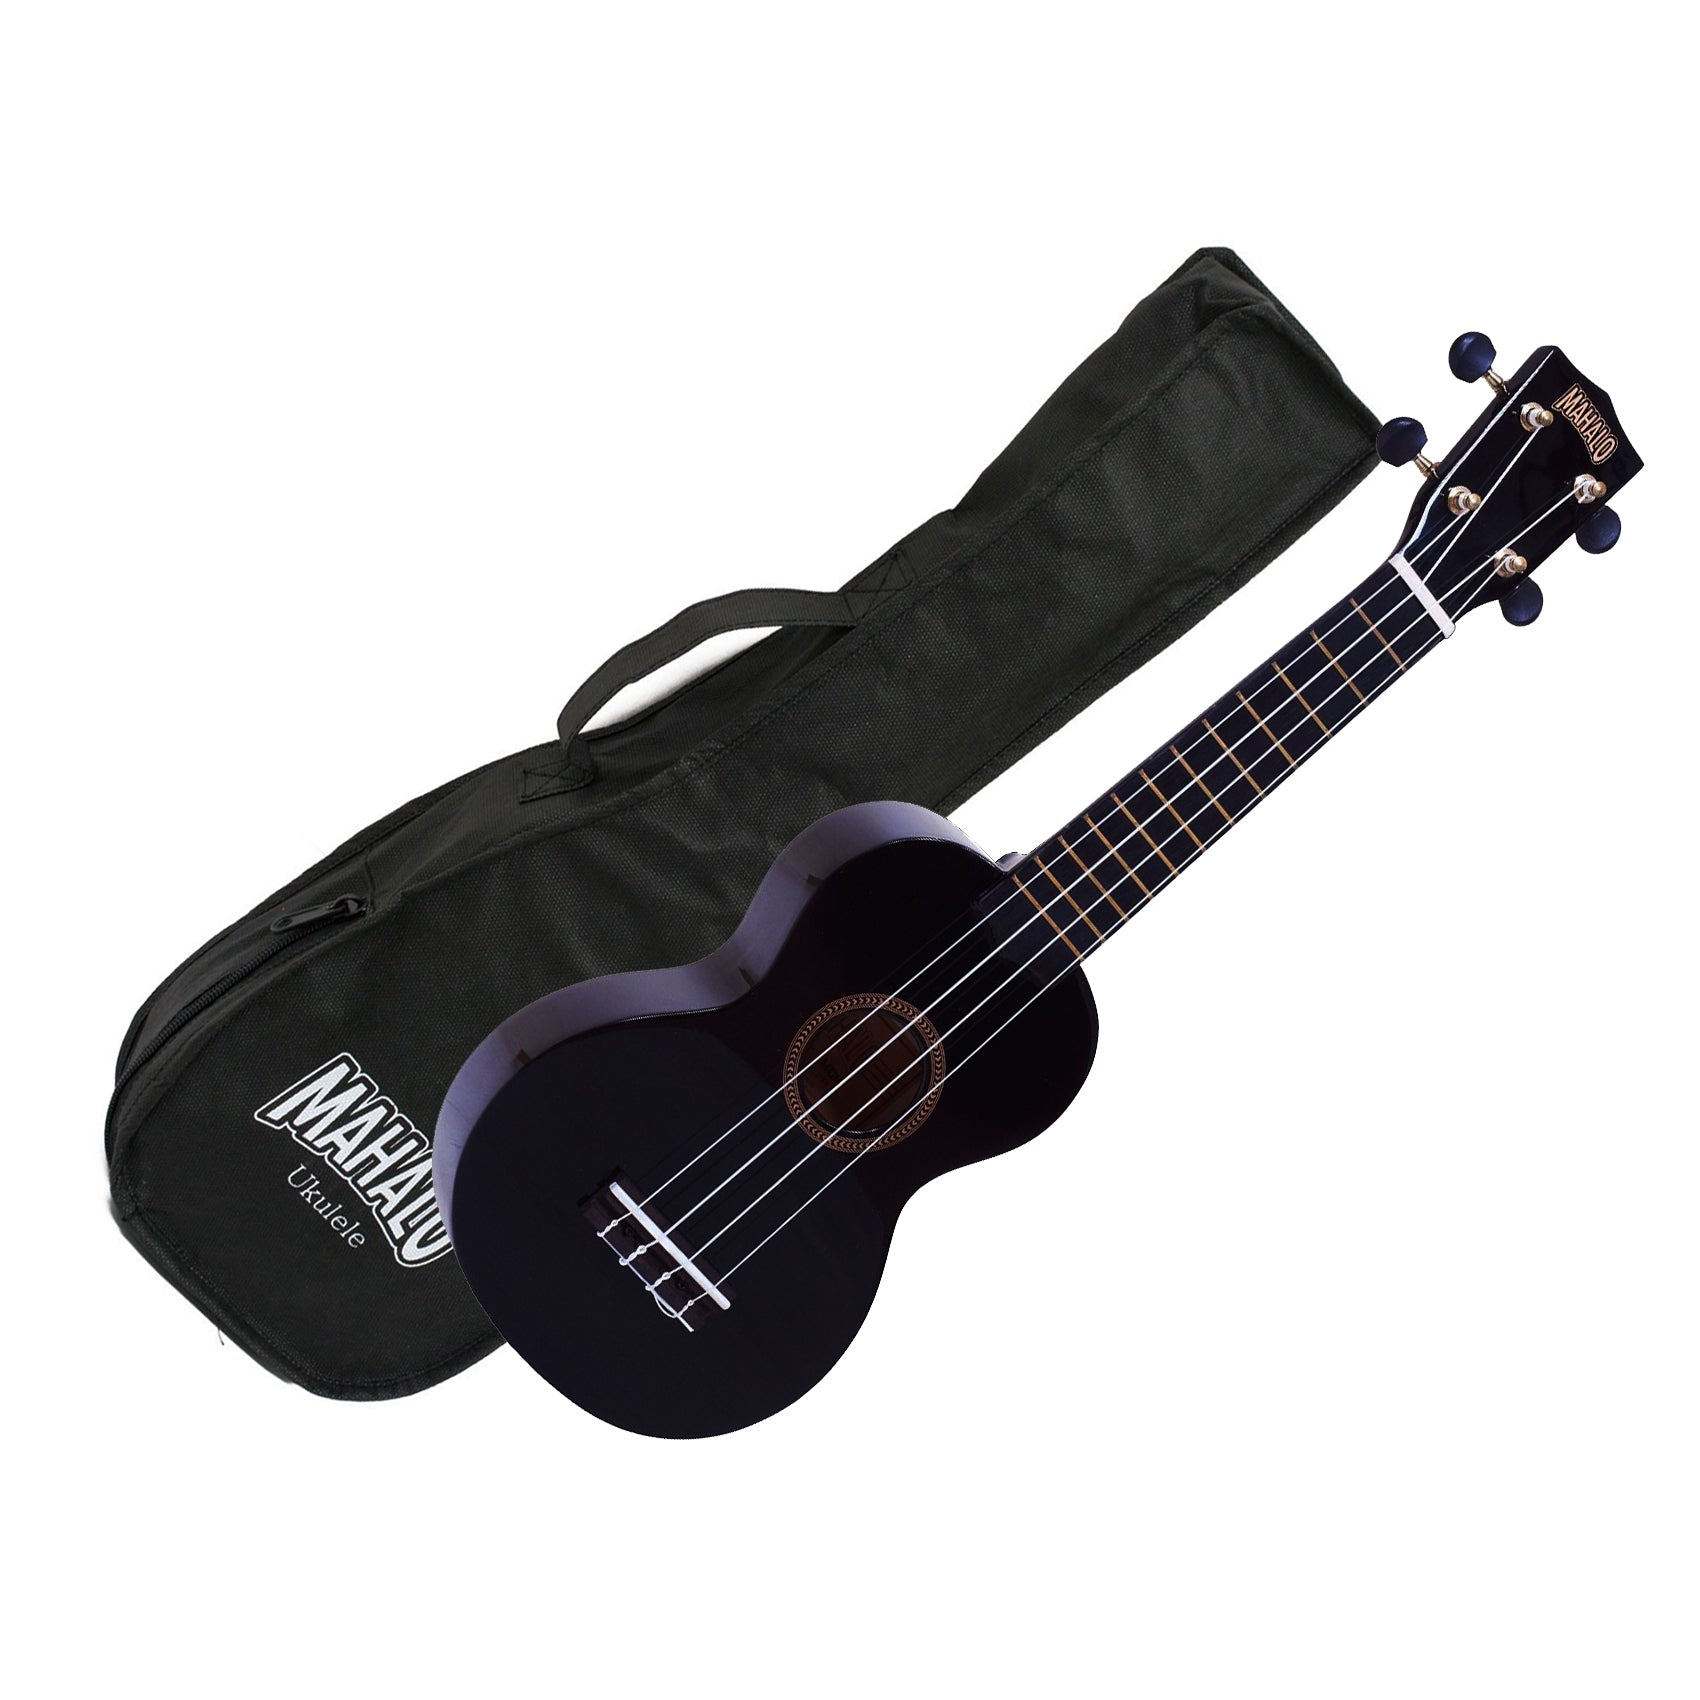 Mahalo MR1-BK Soprano Ukulele w/ Bag - Black